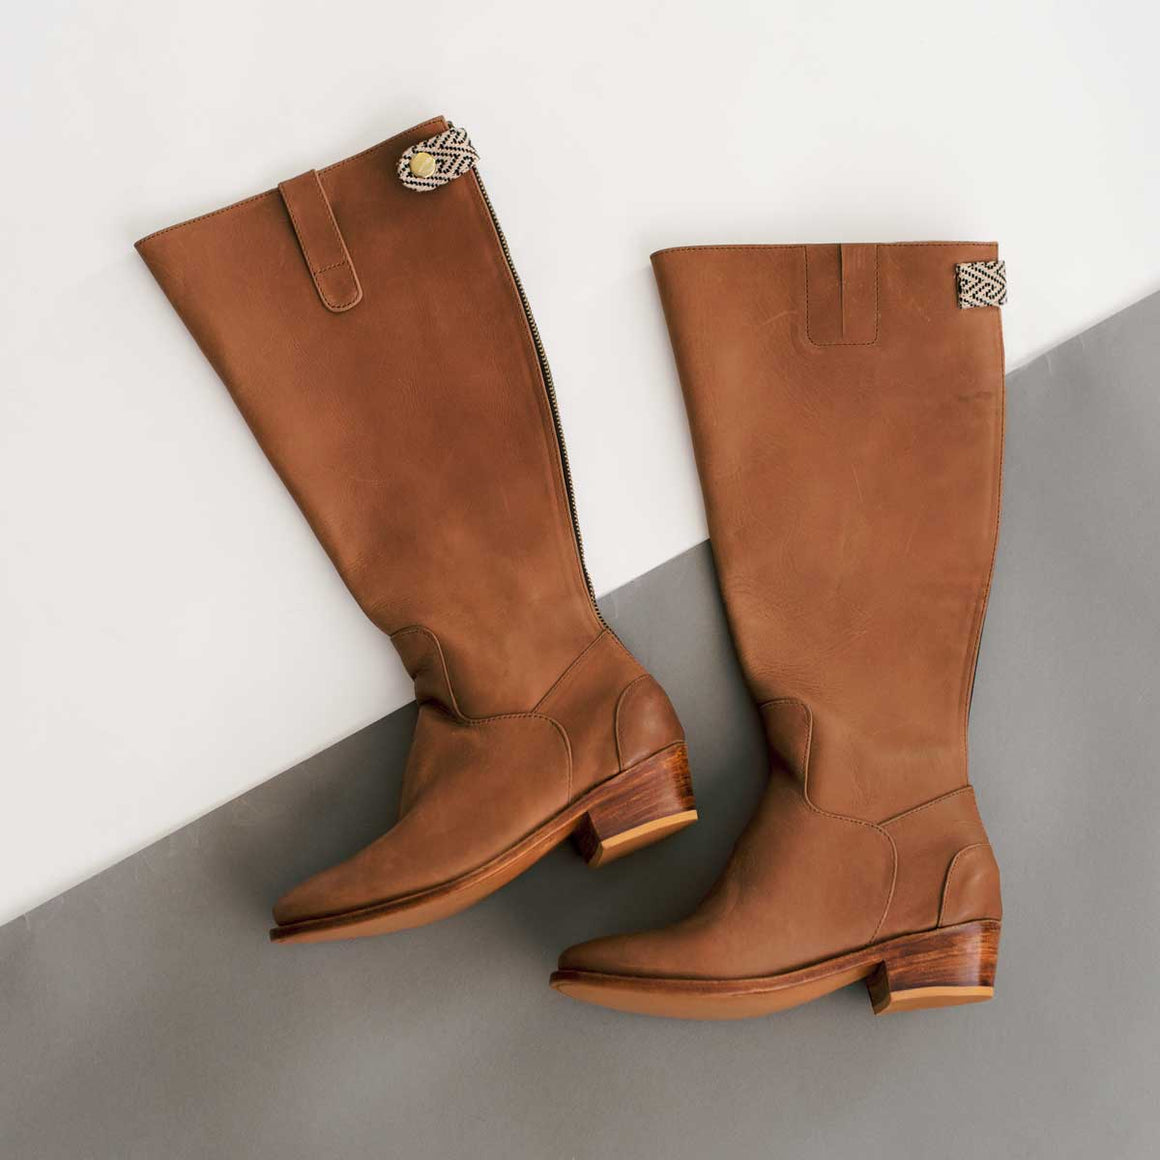 Ariana Boot in Chestnut Leather